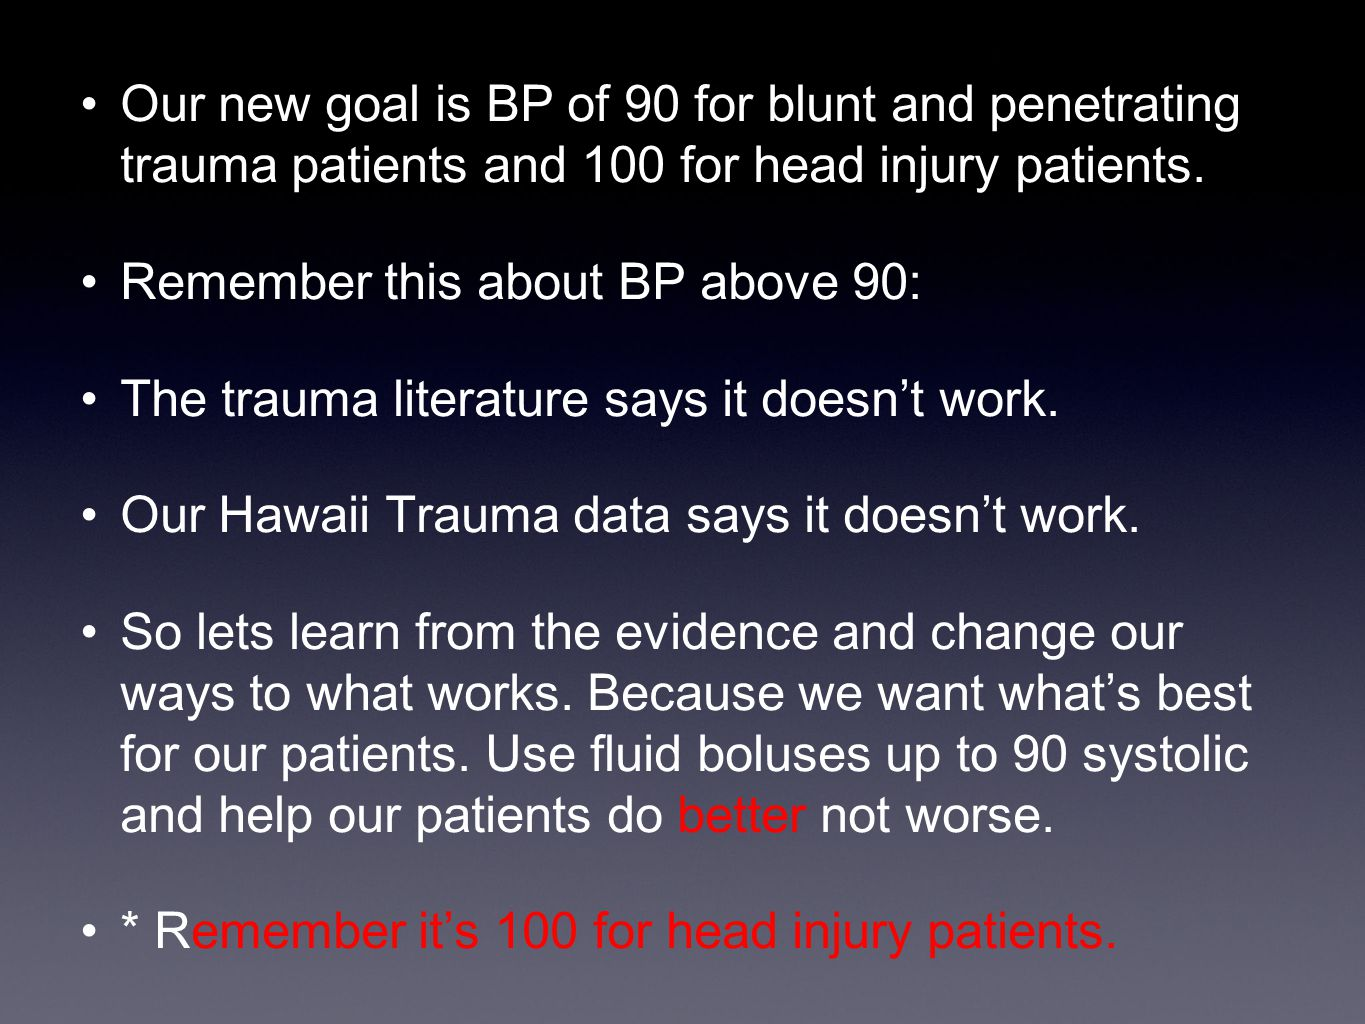 Our new goal is BP of 90 for blunt and penetrating trauma patients and 100 for head injury patients.